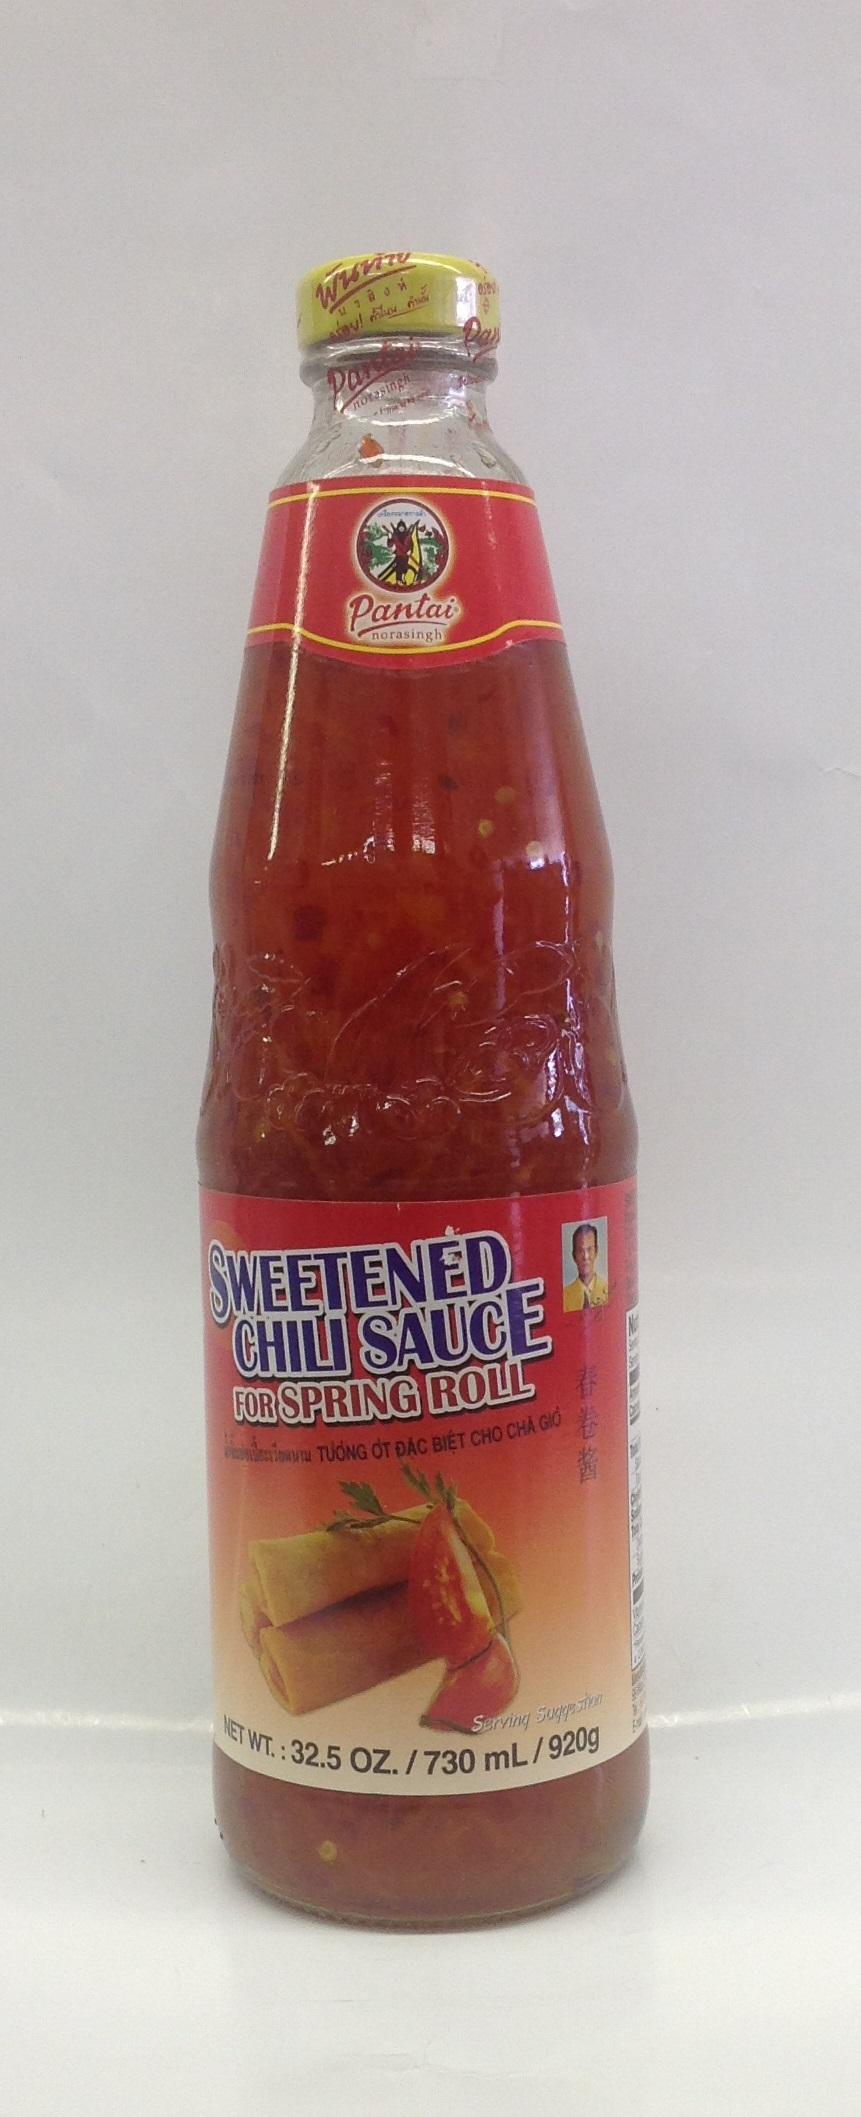 Sweetened Chili Sauce for Spring Roll   Pantai   SC15110 12x32 oz